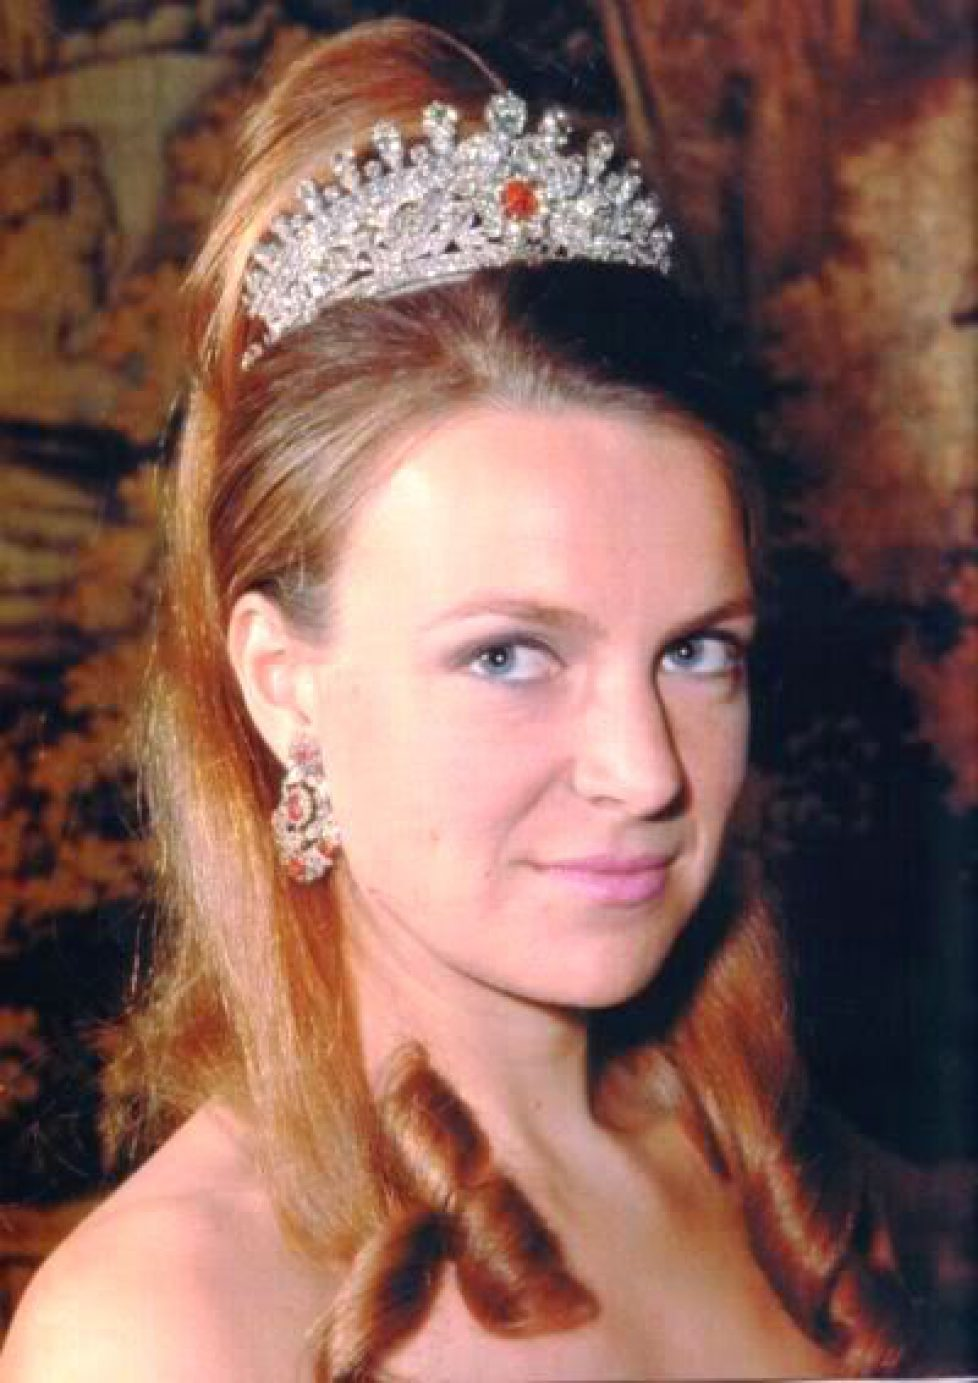 6the princess-H.R.H. Princess Irene of Bourbon-Parma, Princess of The Neherlands